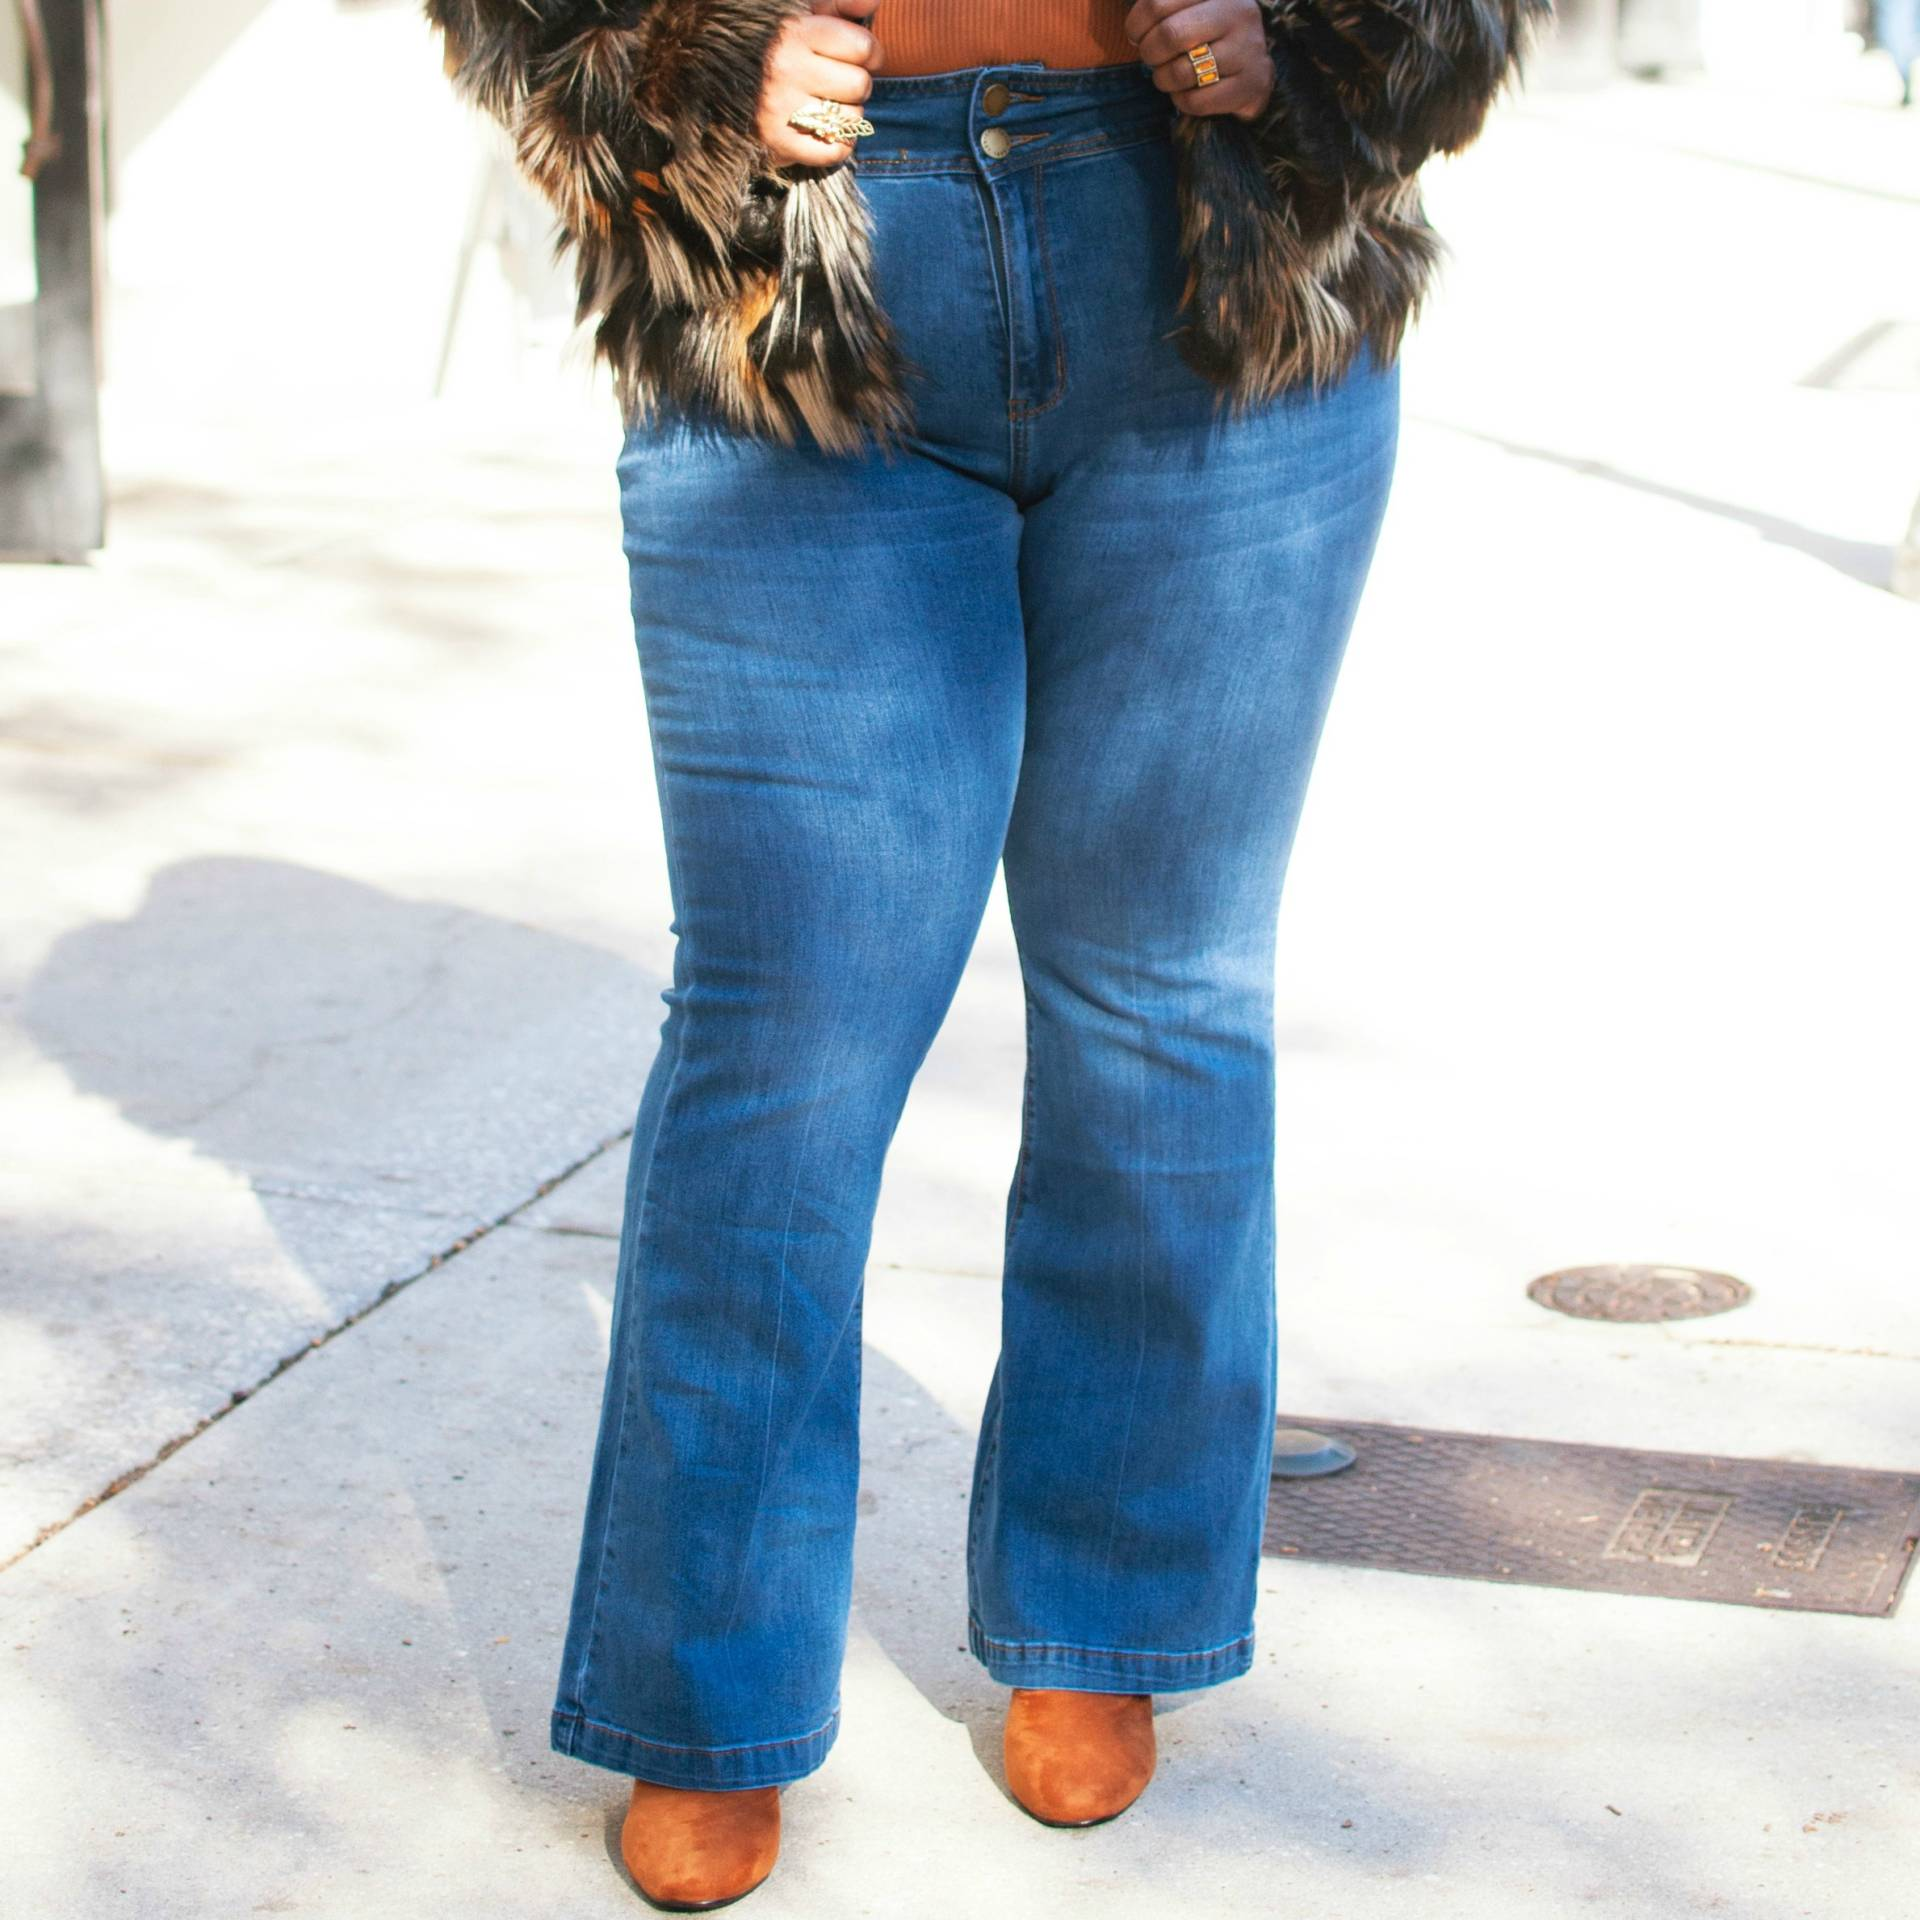 Plus Size Flare Jeans Round Up